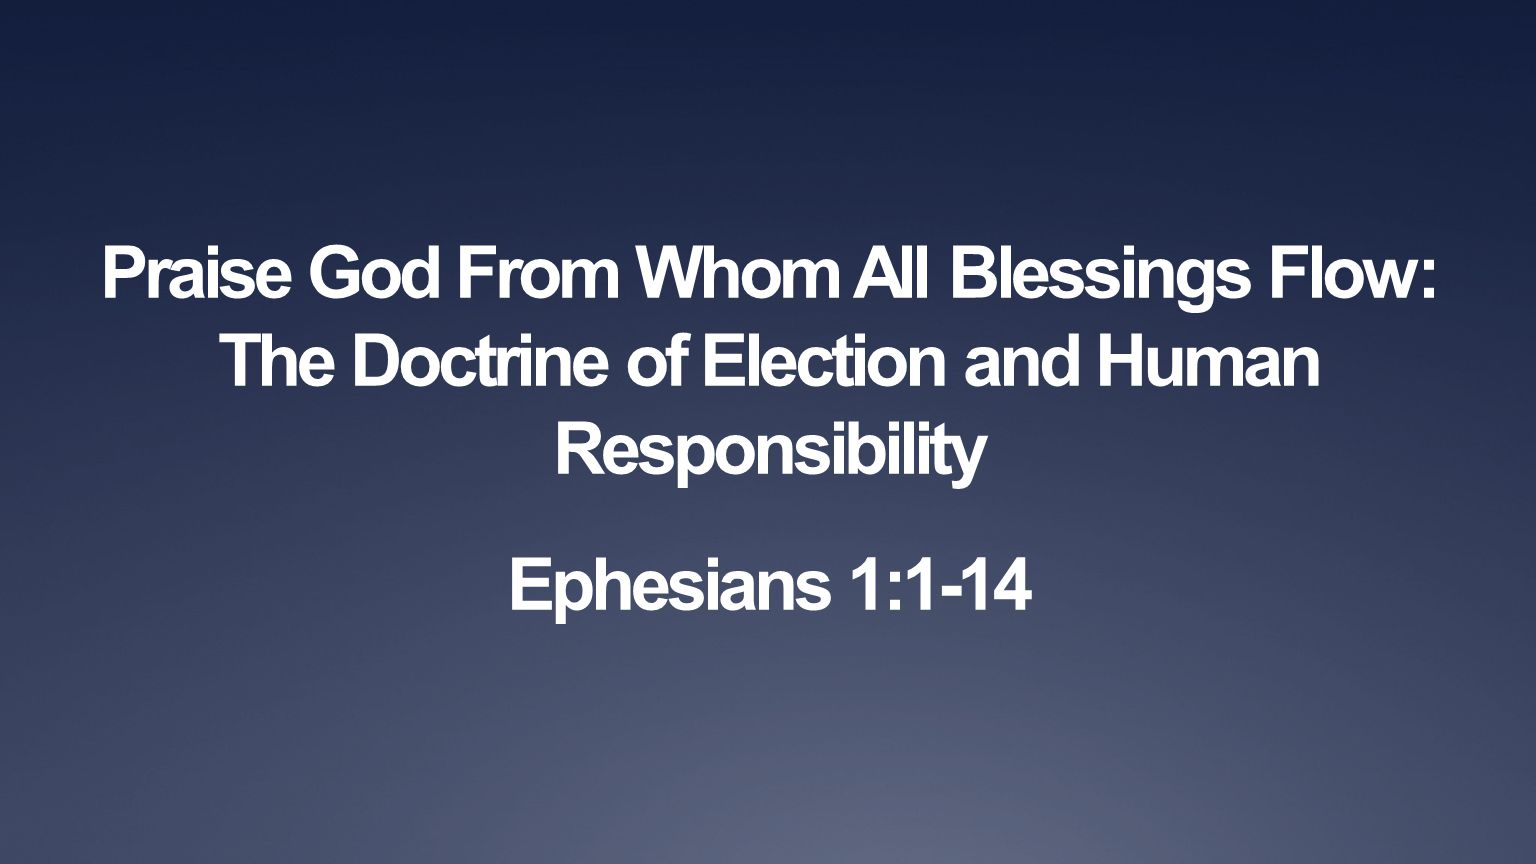 Praise God From Whom All Blessings Flow: The Doctrine of Election and Human Responsibility Ephesians 1:1-14